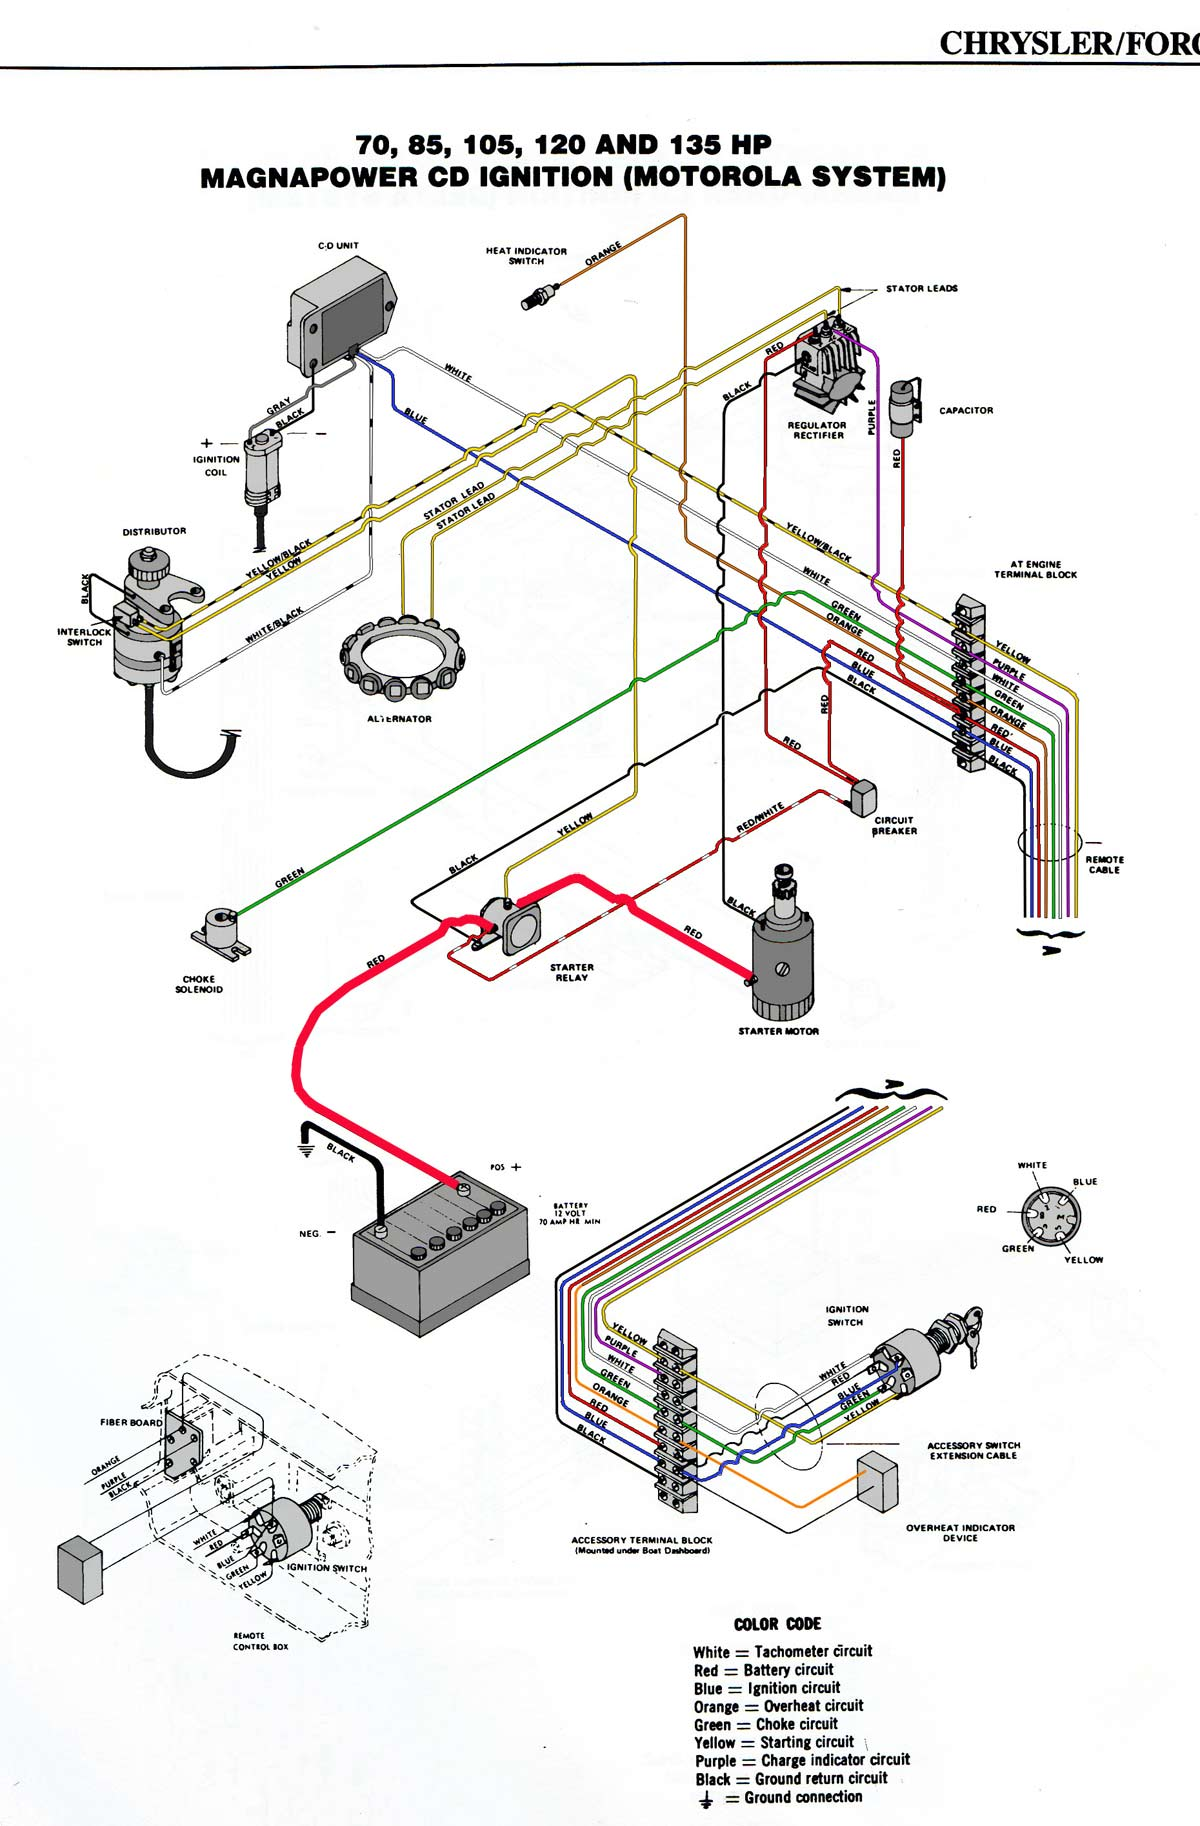 Wiring Chrysler Cyl Motorola on 75 Hp Mercury Outboard Parts Diagram